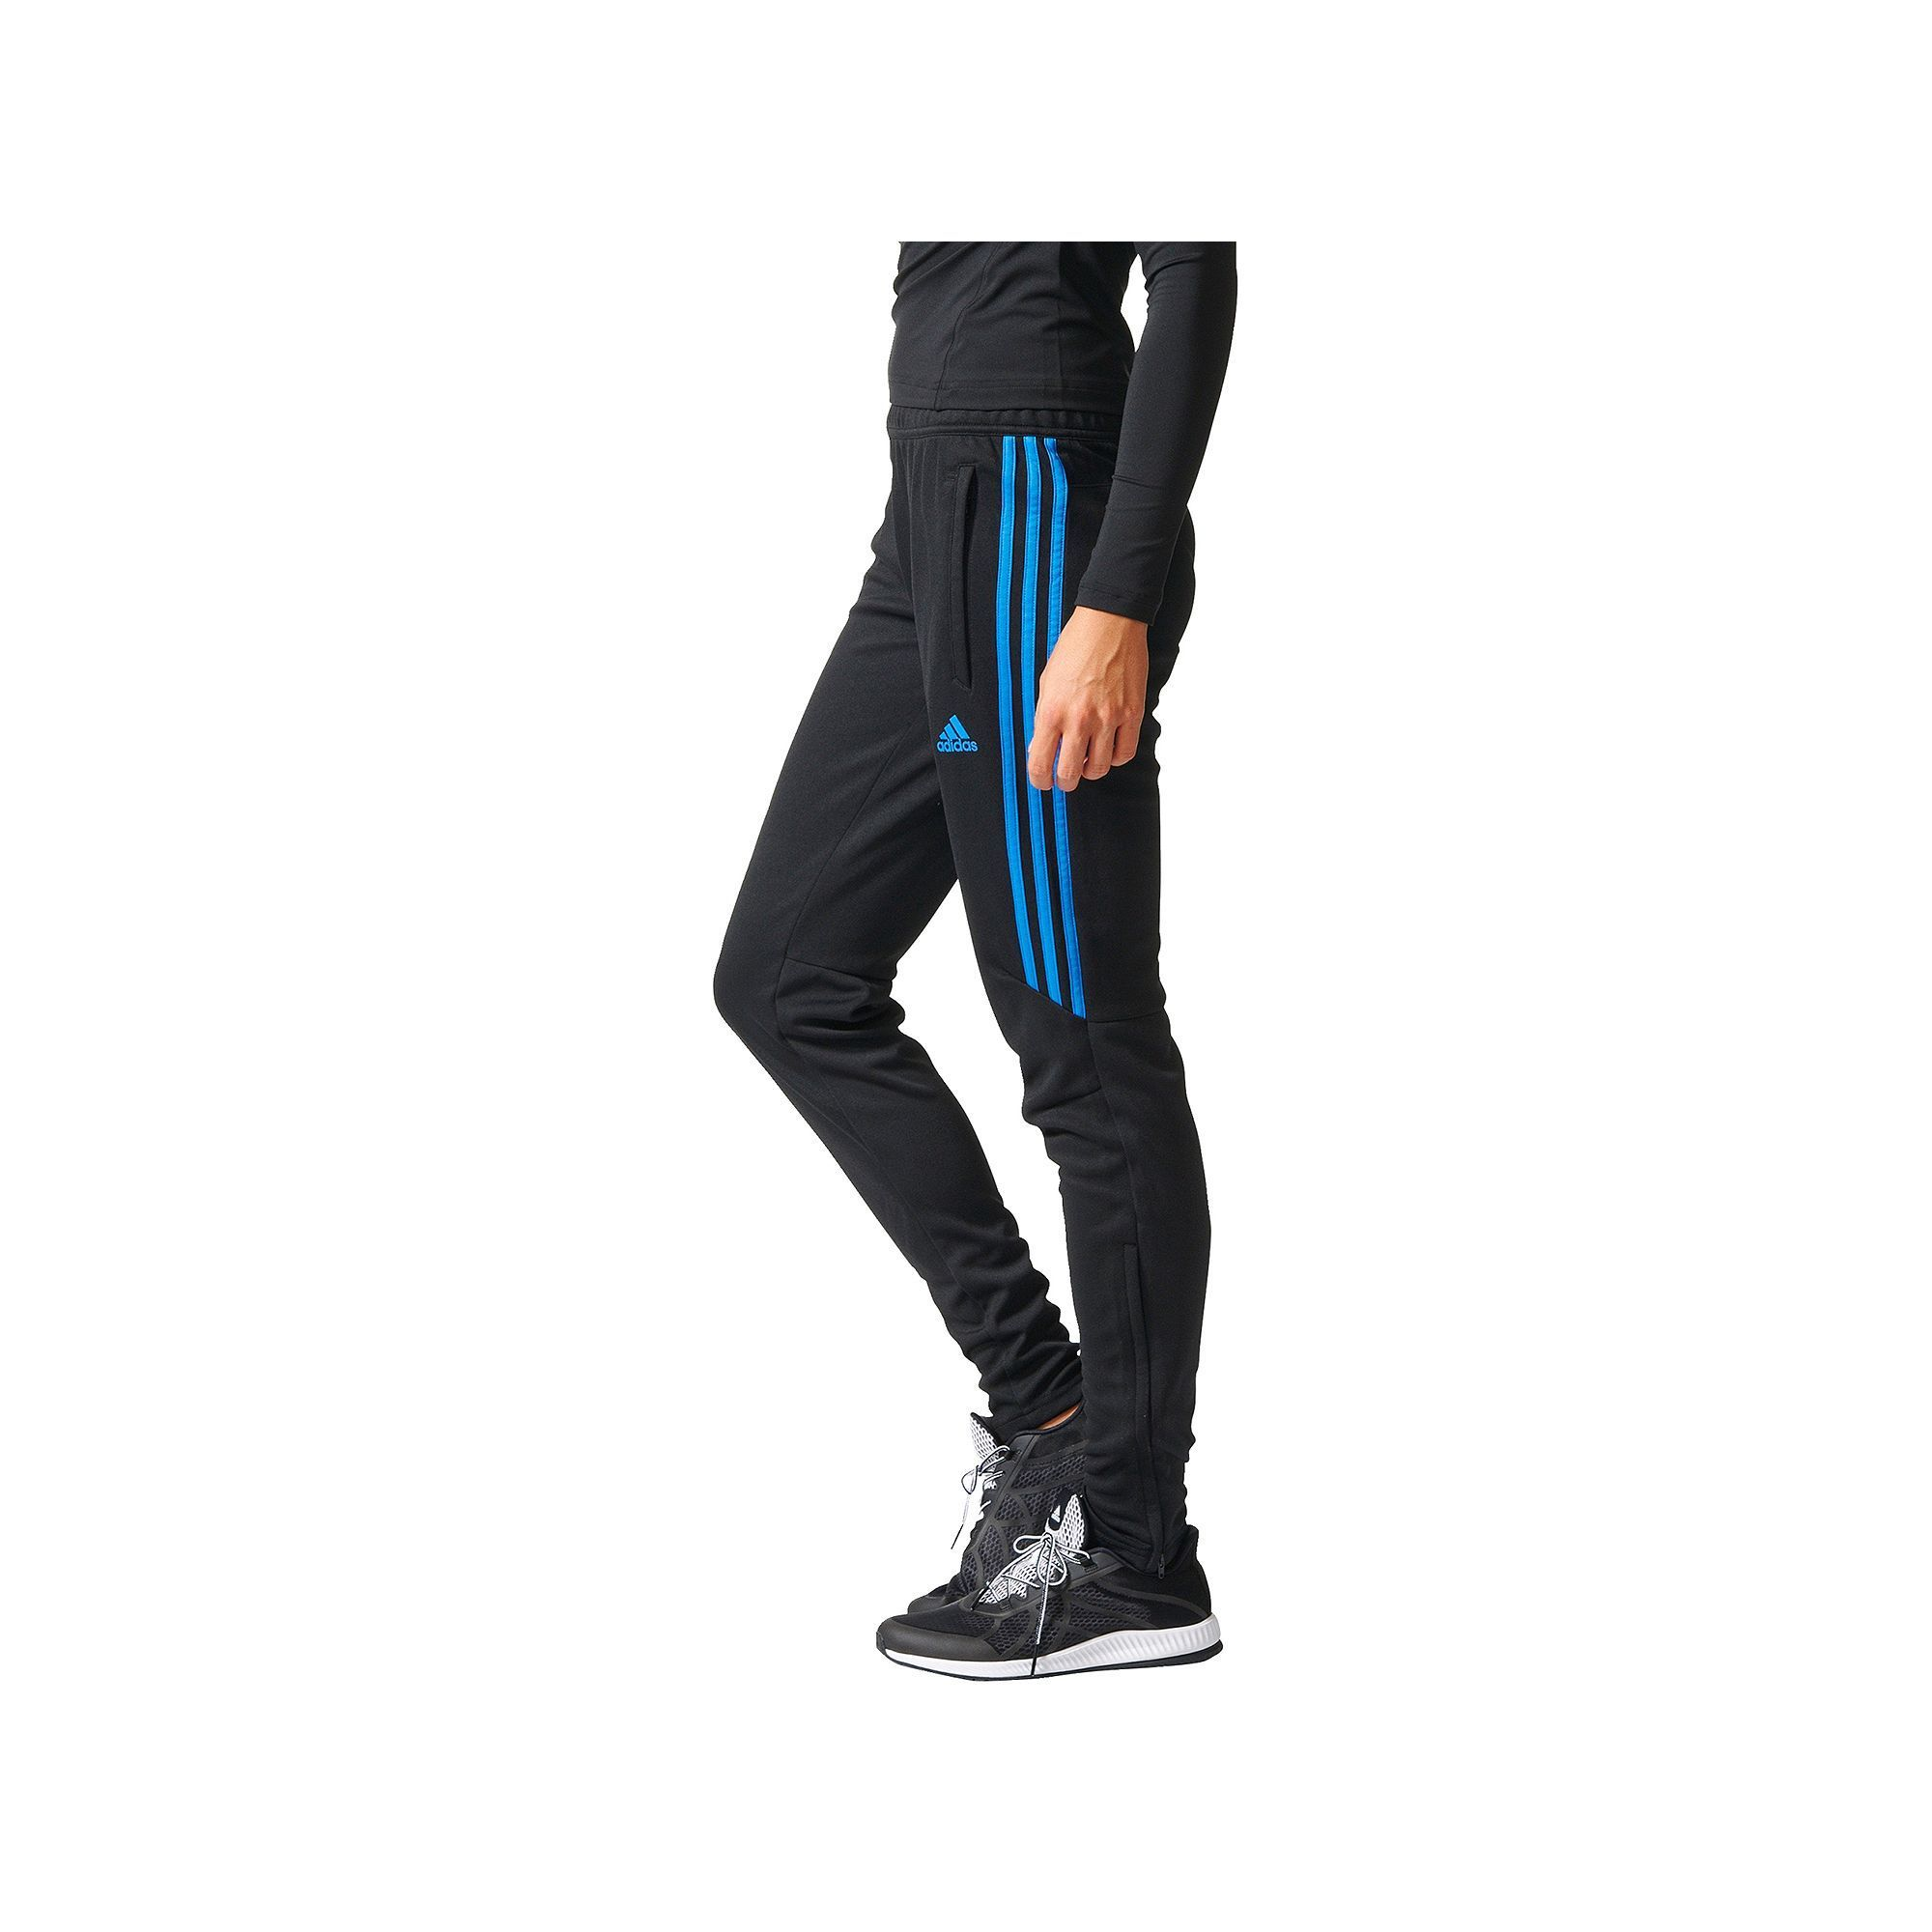 0af363503dd Women's adidas Tiro 17 Training Midrise Pants | Products | Adidas ...